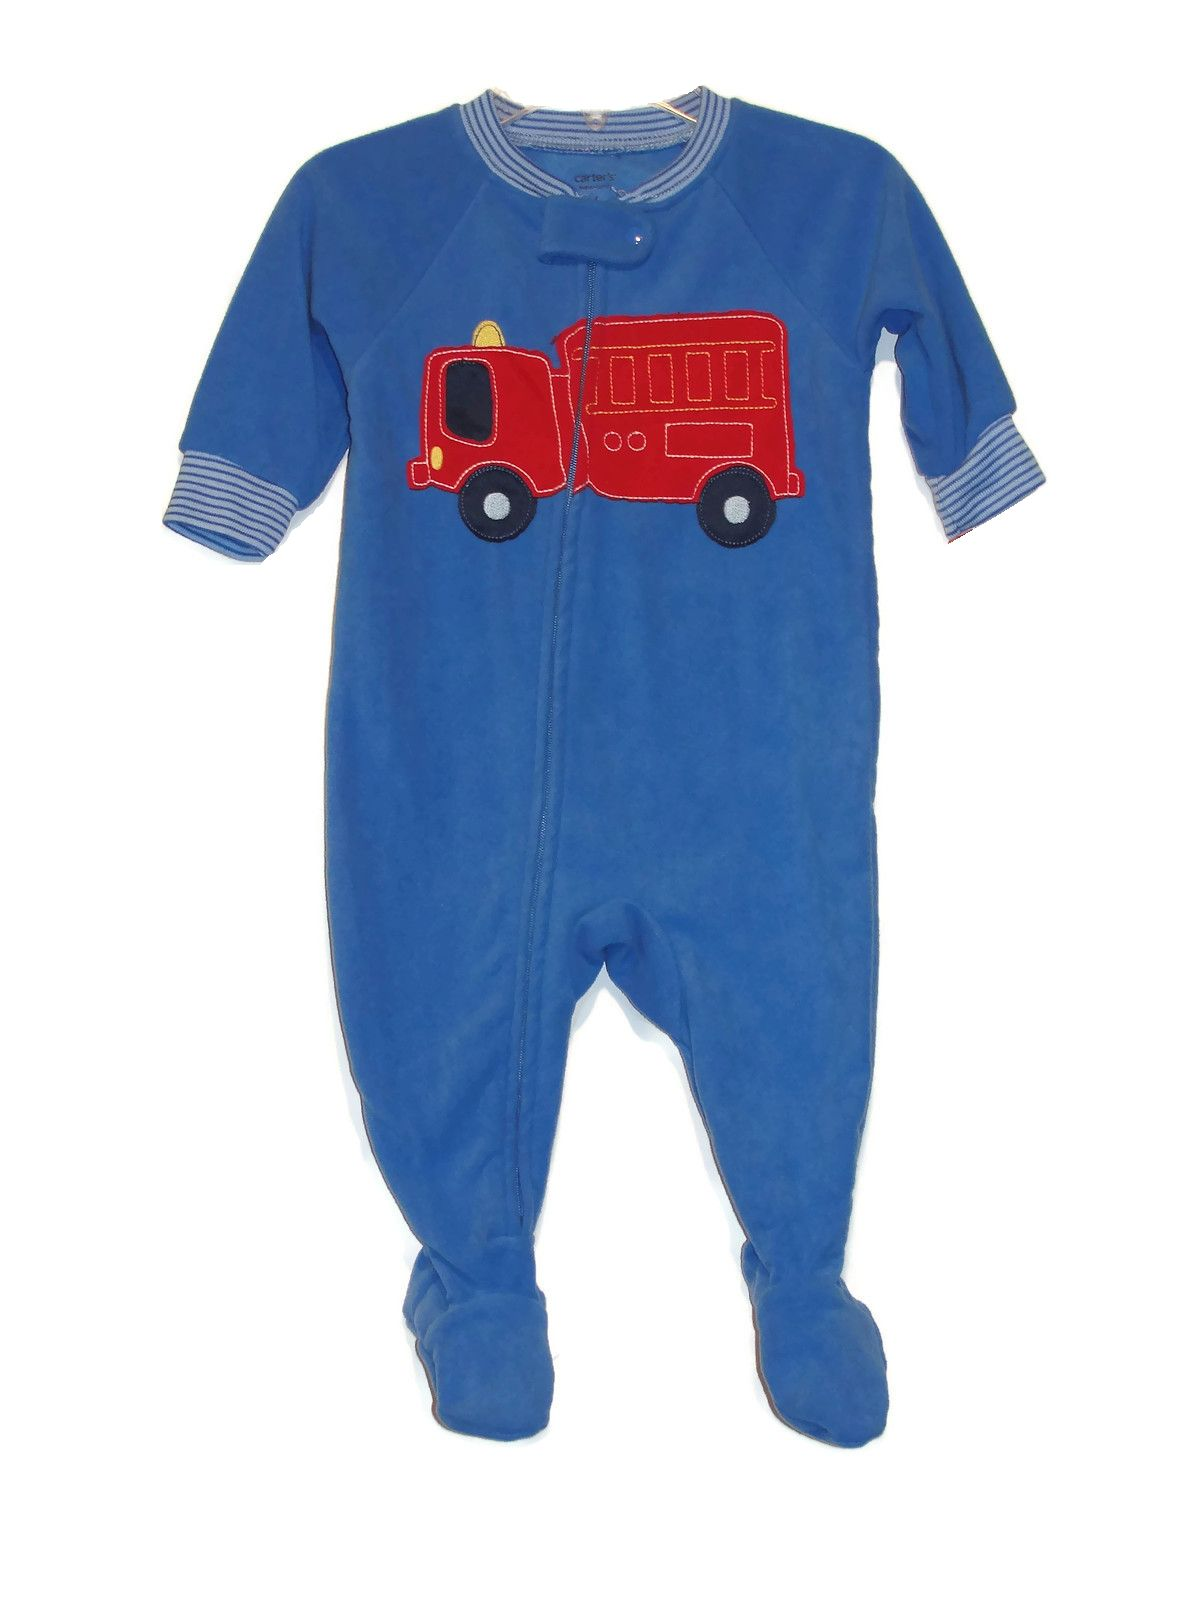 449615a0990a Carter s Baby Boy s 6 Months Blue Firetruck Footed Pajama Sleeper ...